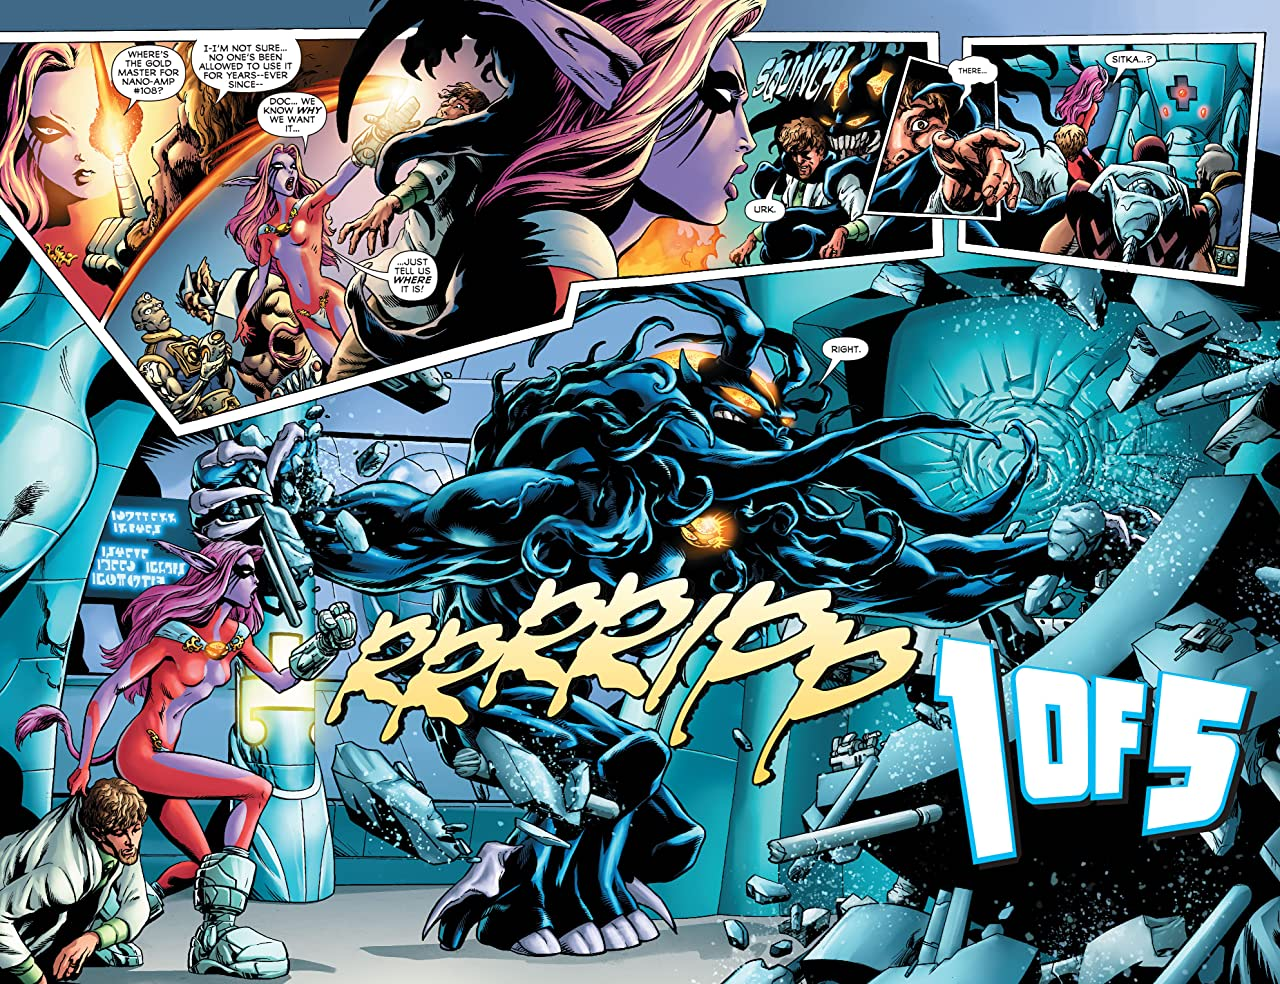 Legion of Super-Heroes (2011-2013) Vol. 2: The Dominators